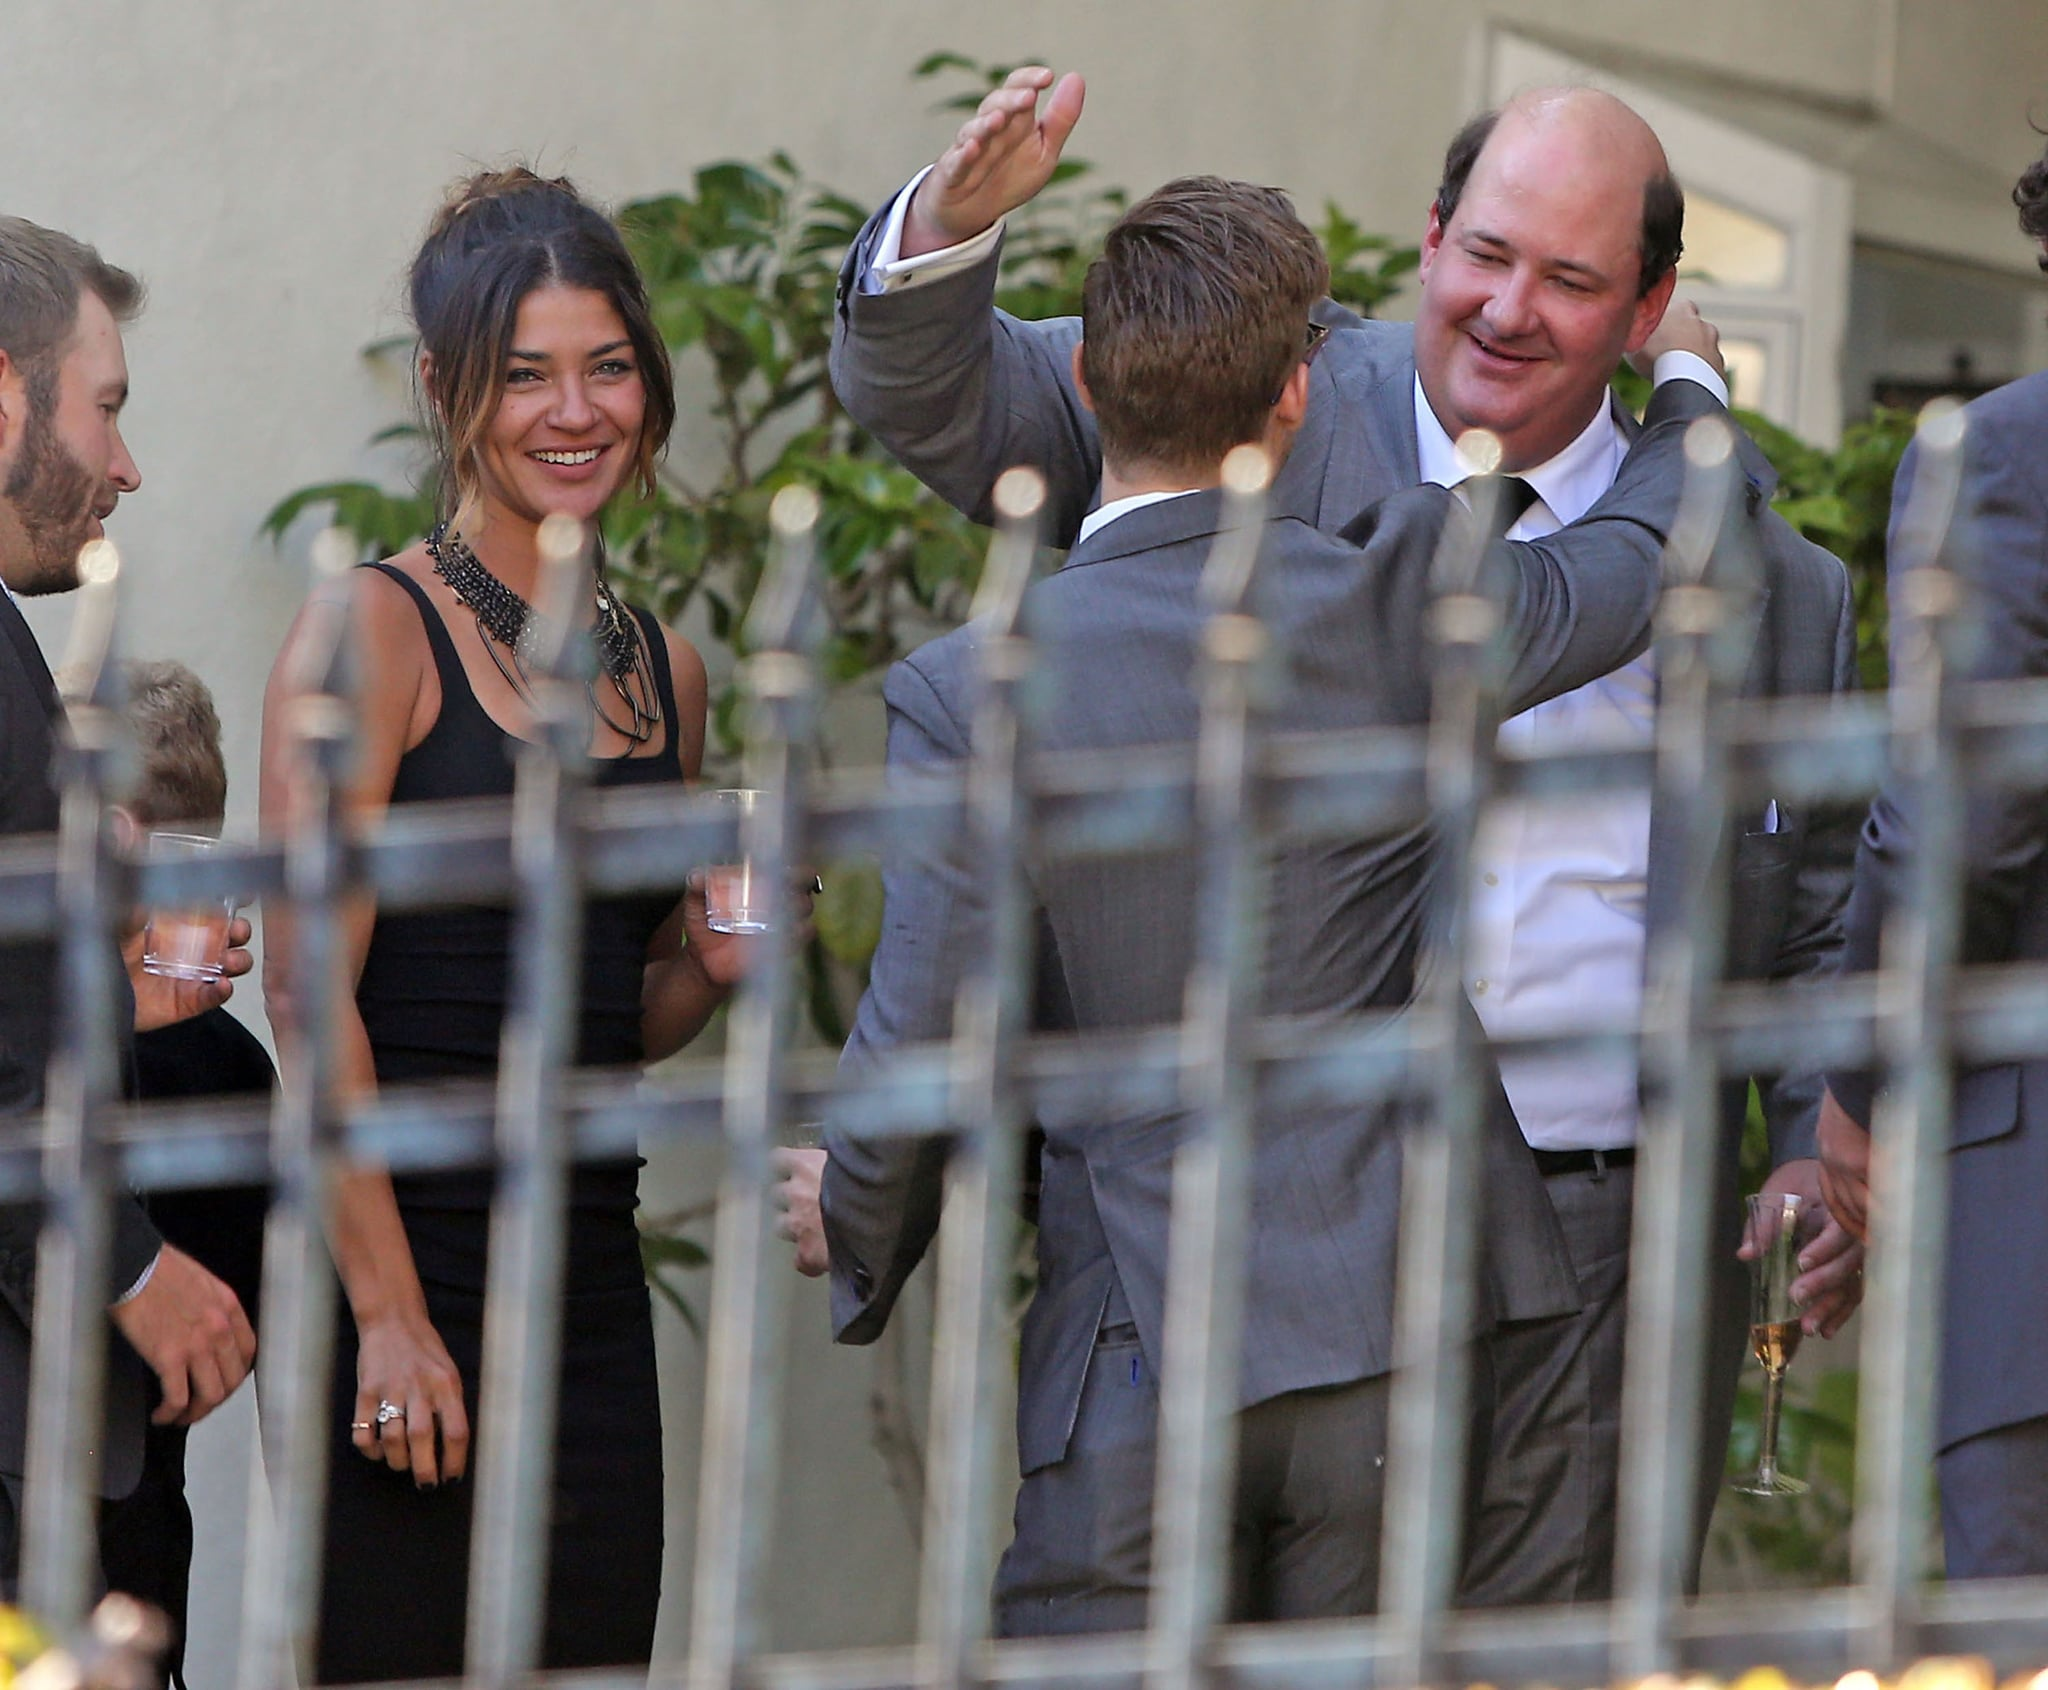 Jessica Szohr was also at the nuptials.